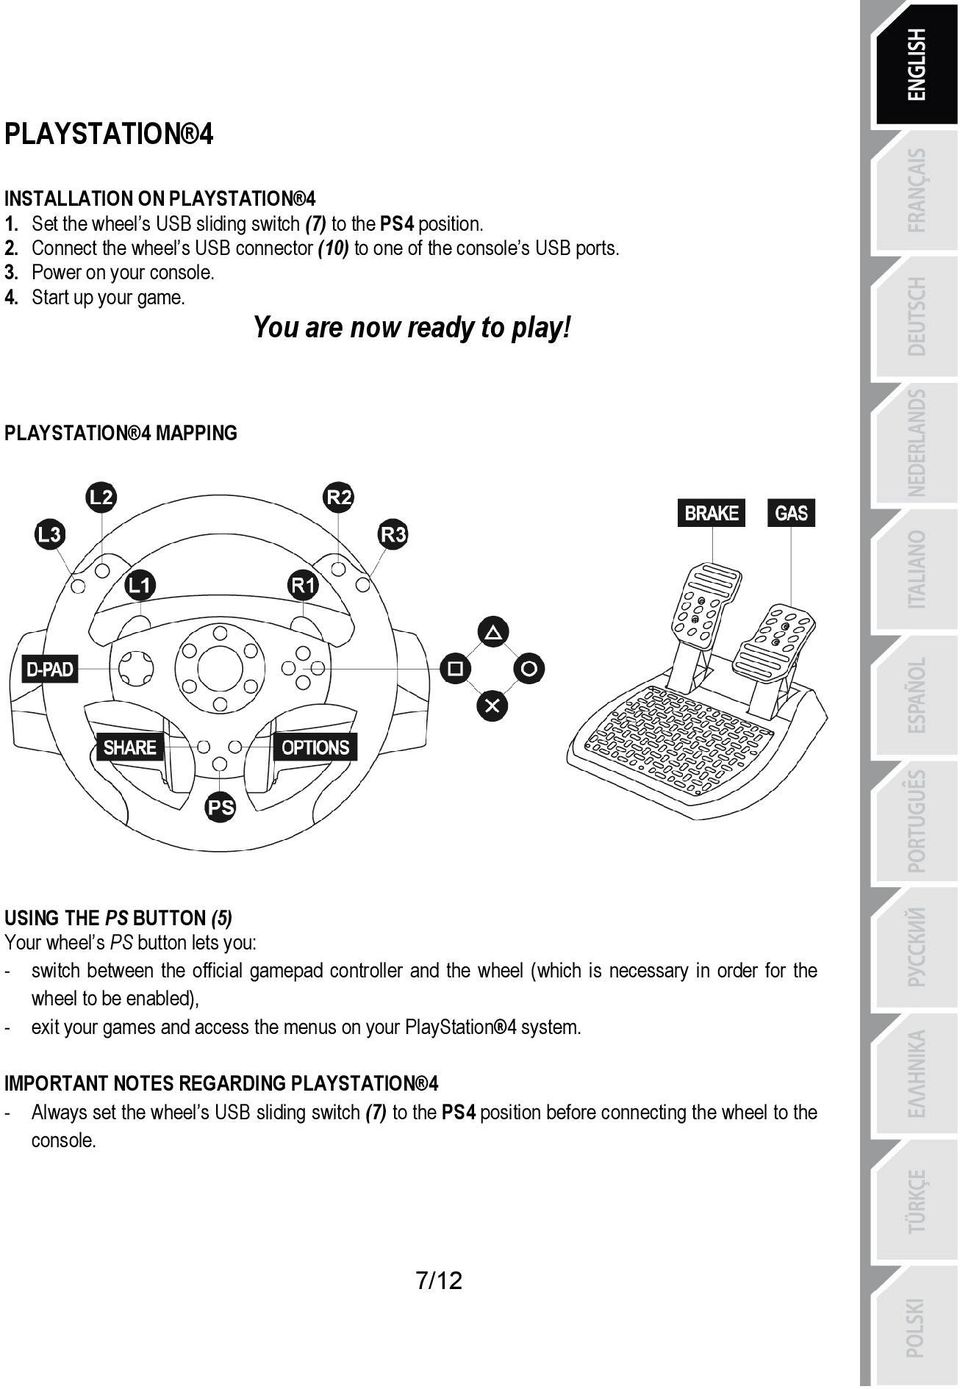 PLAYSTATION«4 MAPPING USING THE PS BUTTON (5) Your wheelæs PS button lets you: - switch between the official gamepad controller and the wheel (which is necessary in order